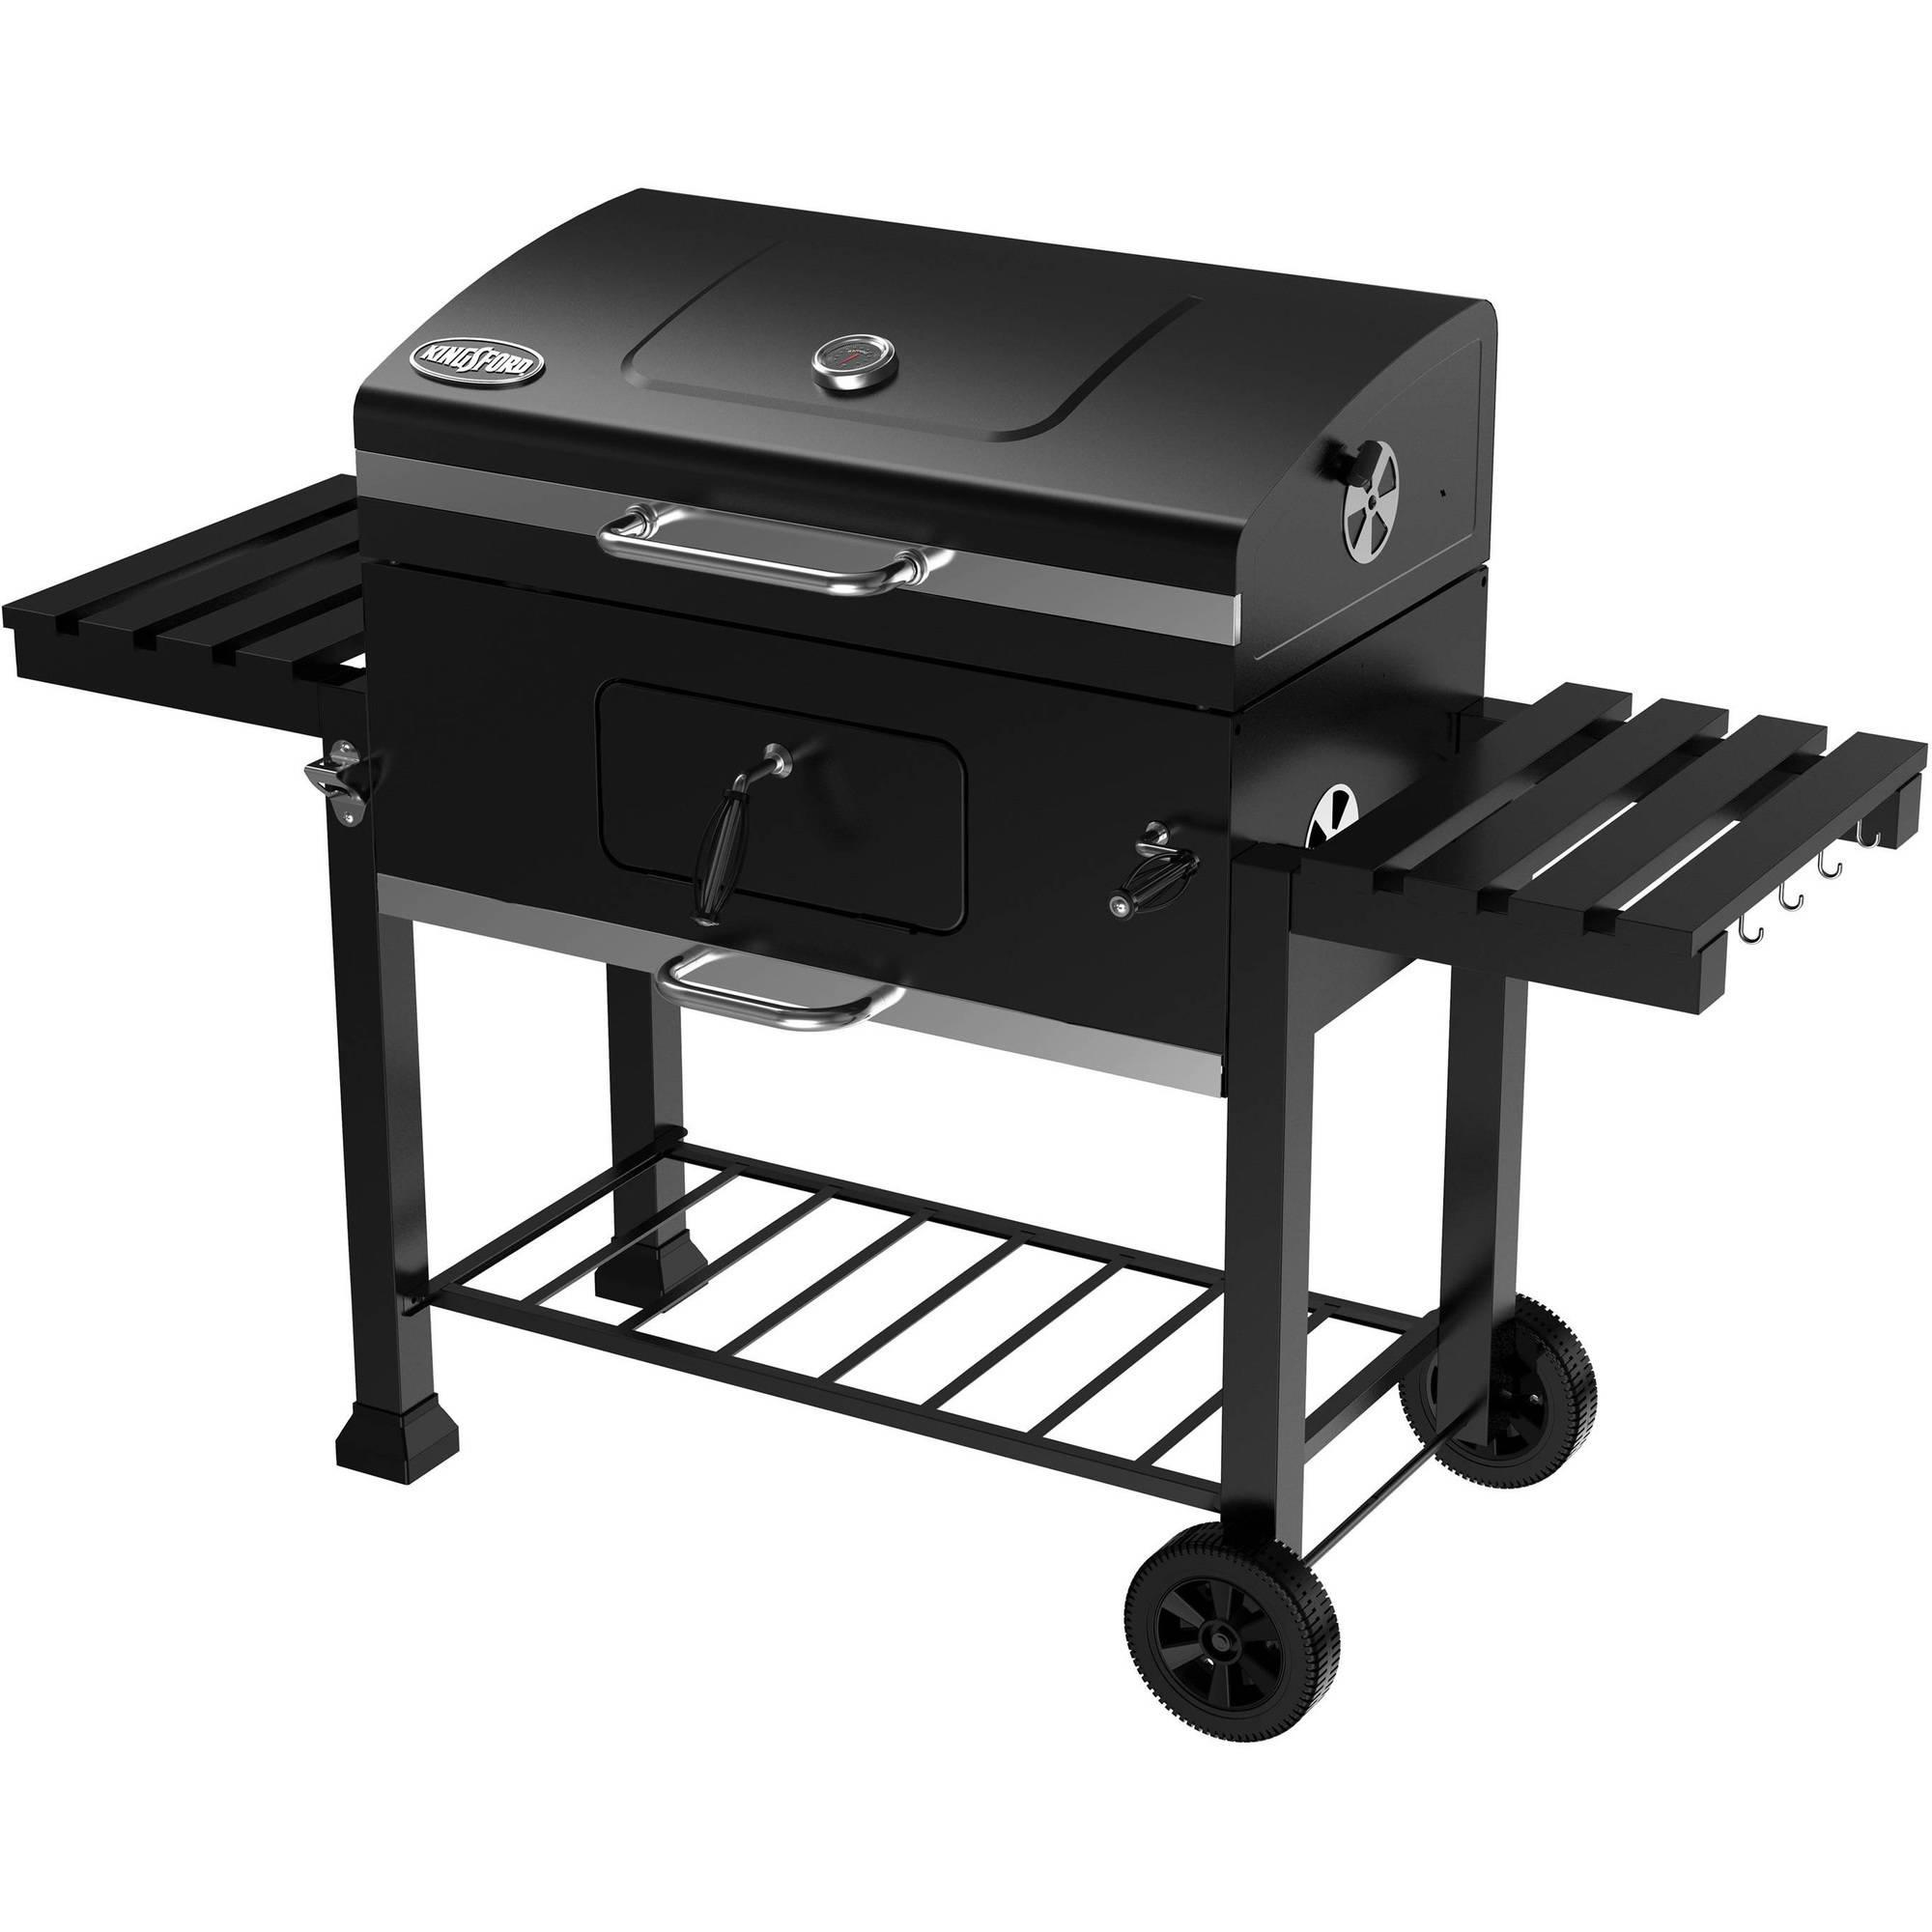 """Kingsford 32"""" Charcoal Grill Smoker Picnic Outdoor Black ..."""